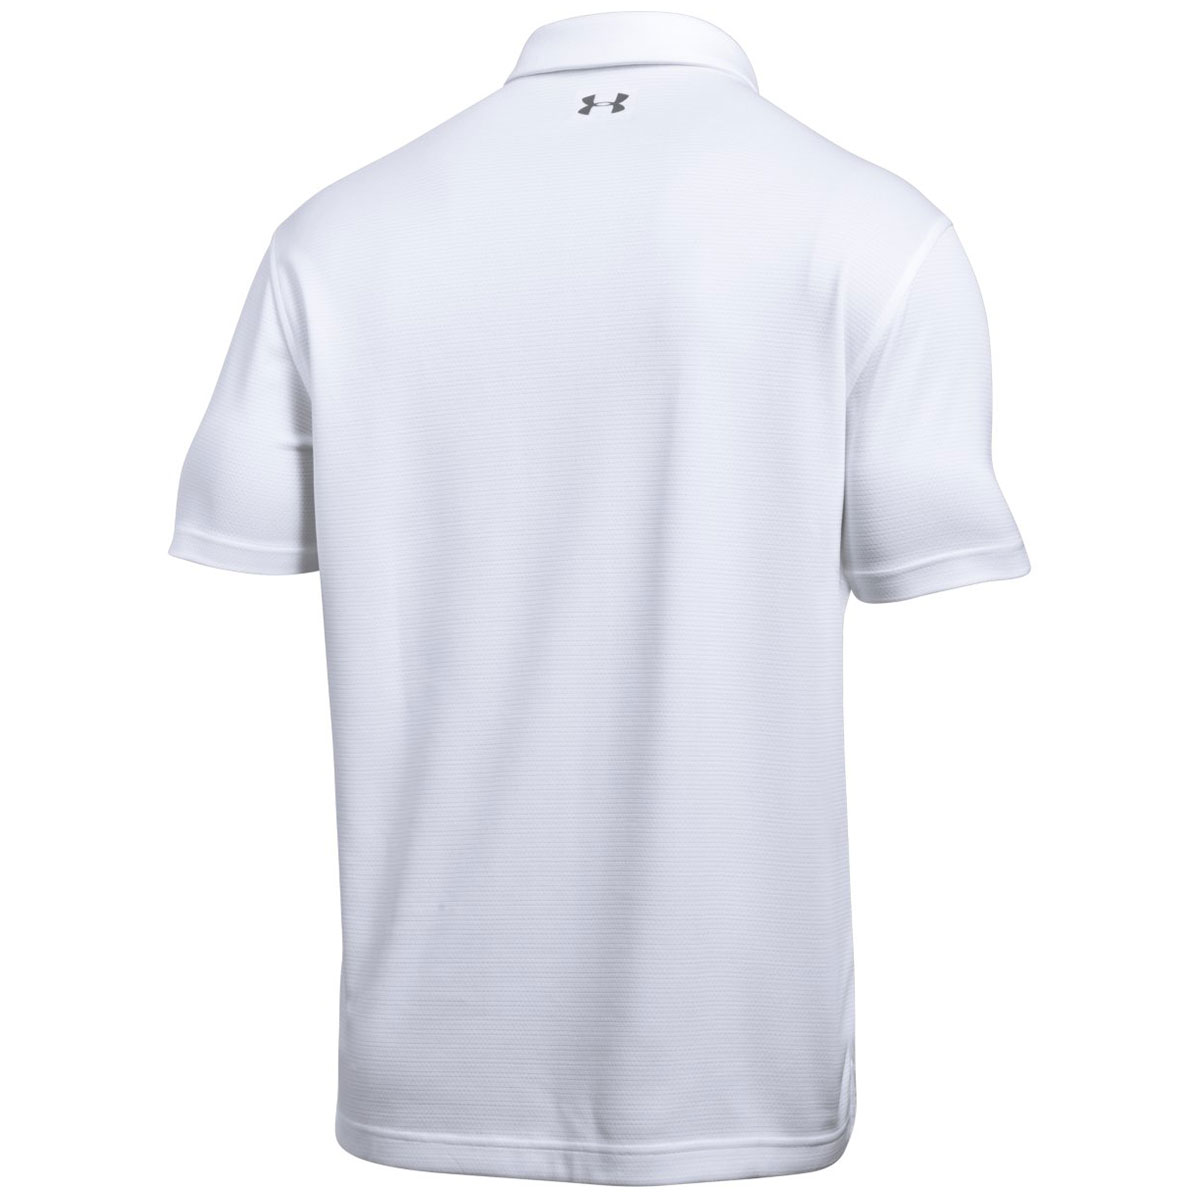 Under-Armour-Mens-2019-Golf-Tech-Wicking-Textured-Soft-Light-Polo-Shirt thumbnail 93